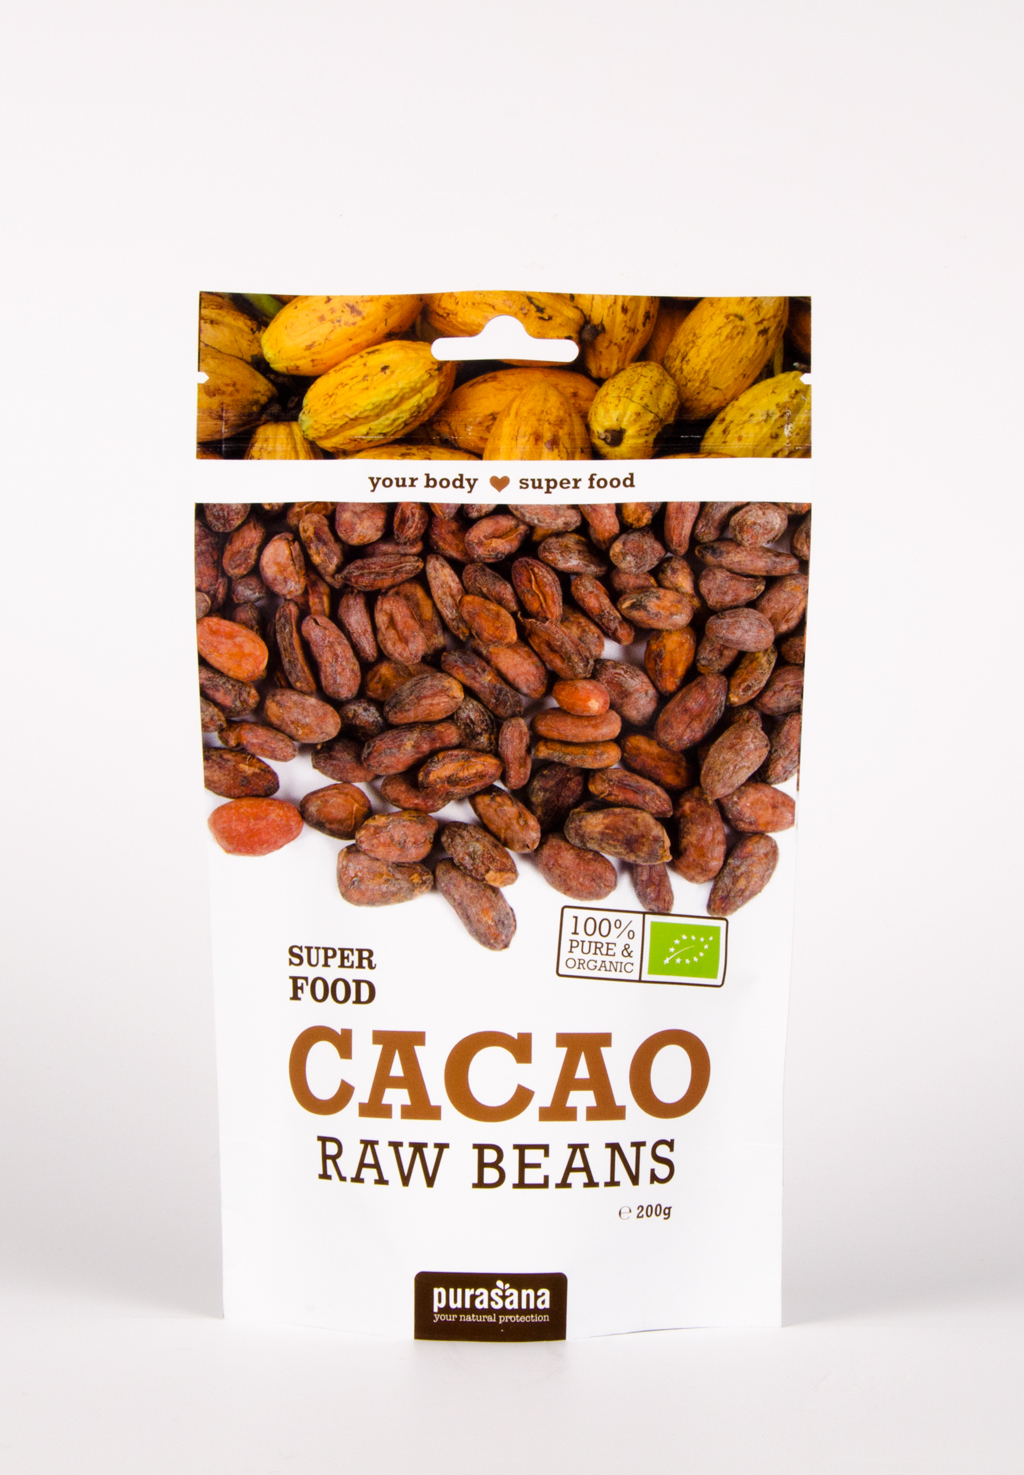 CACAO BEANS FRONT